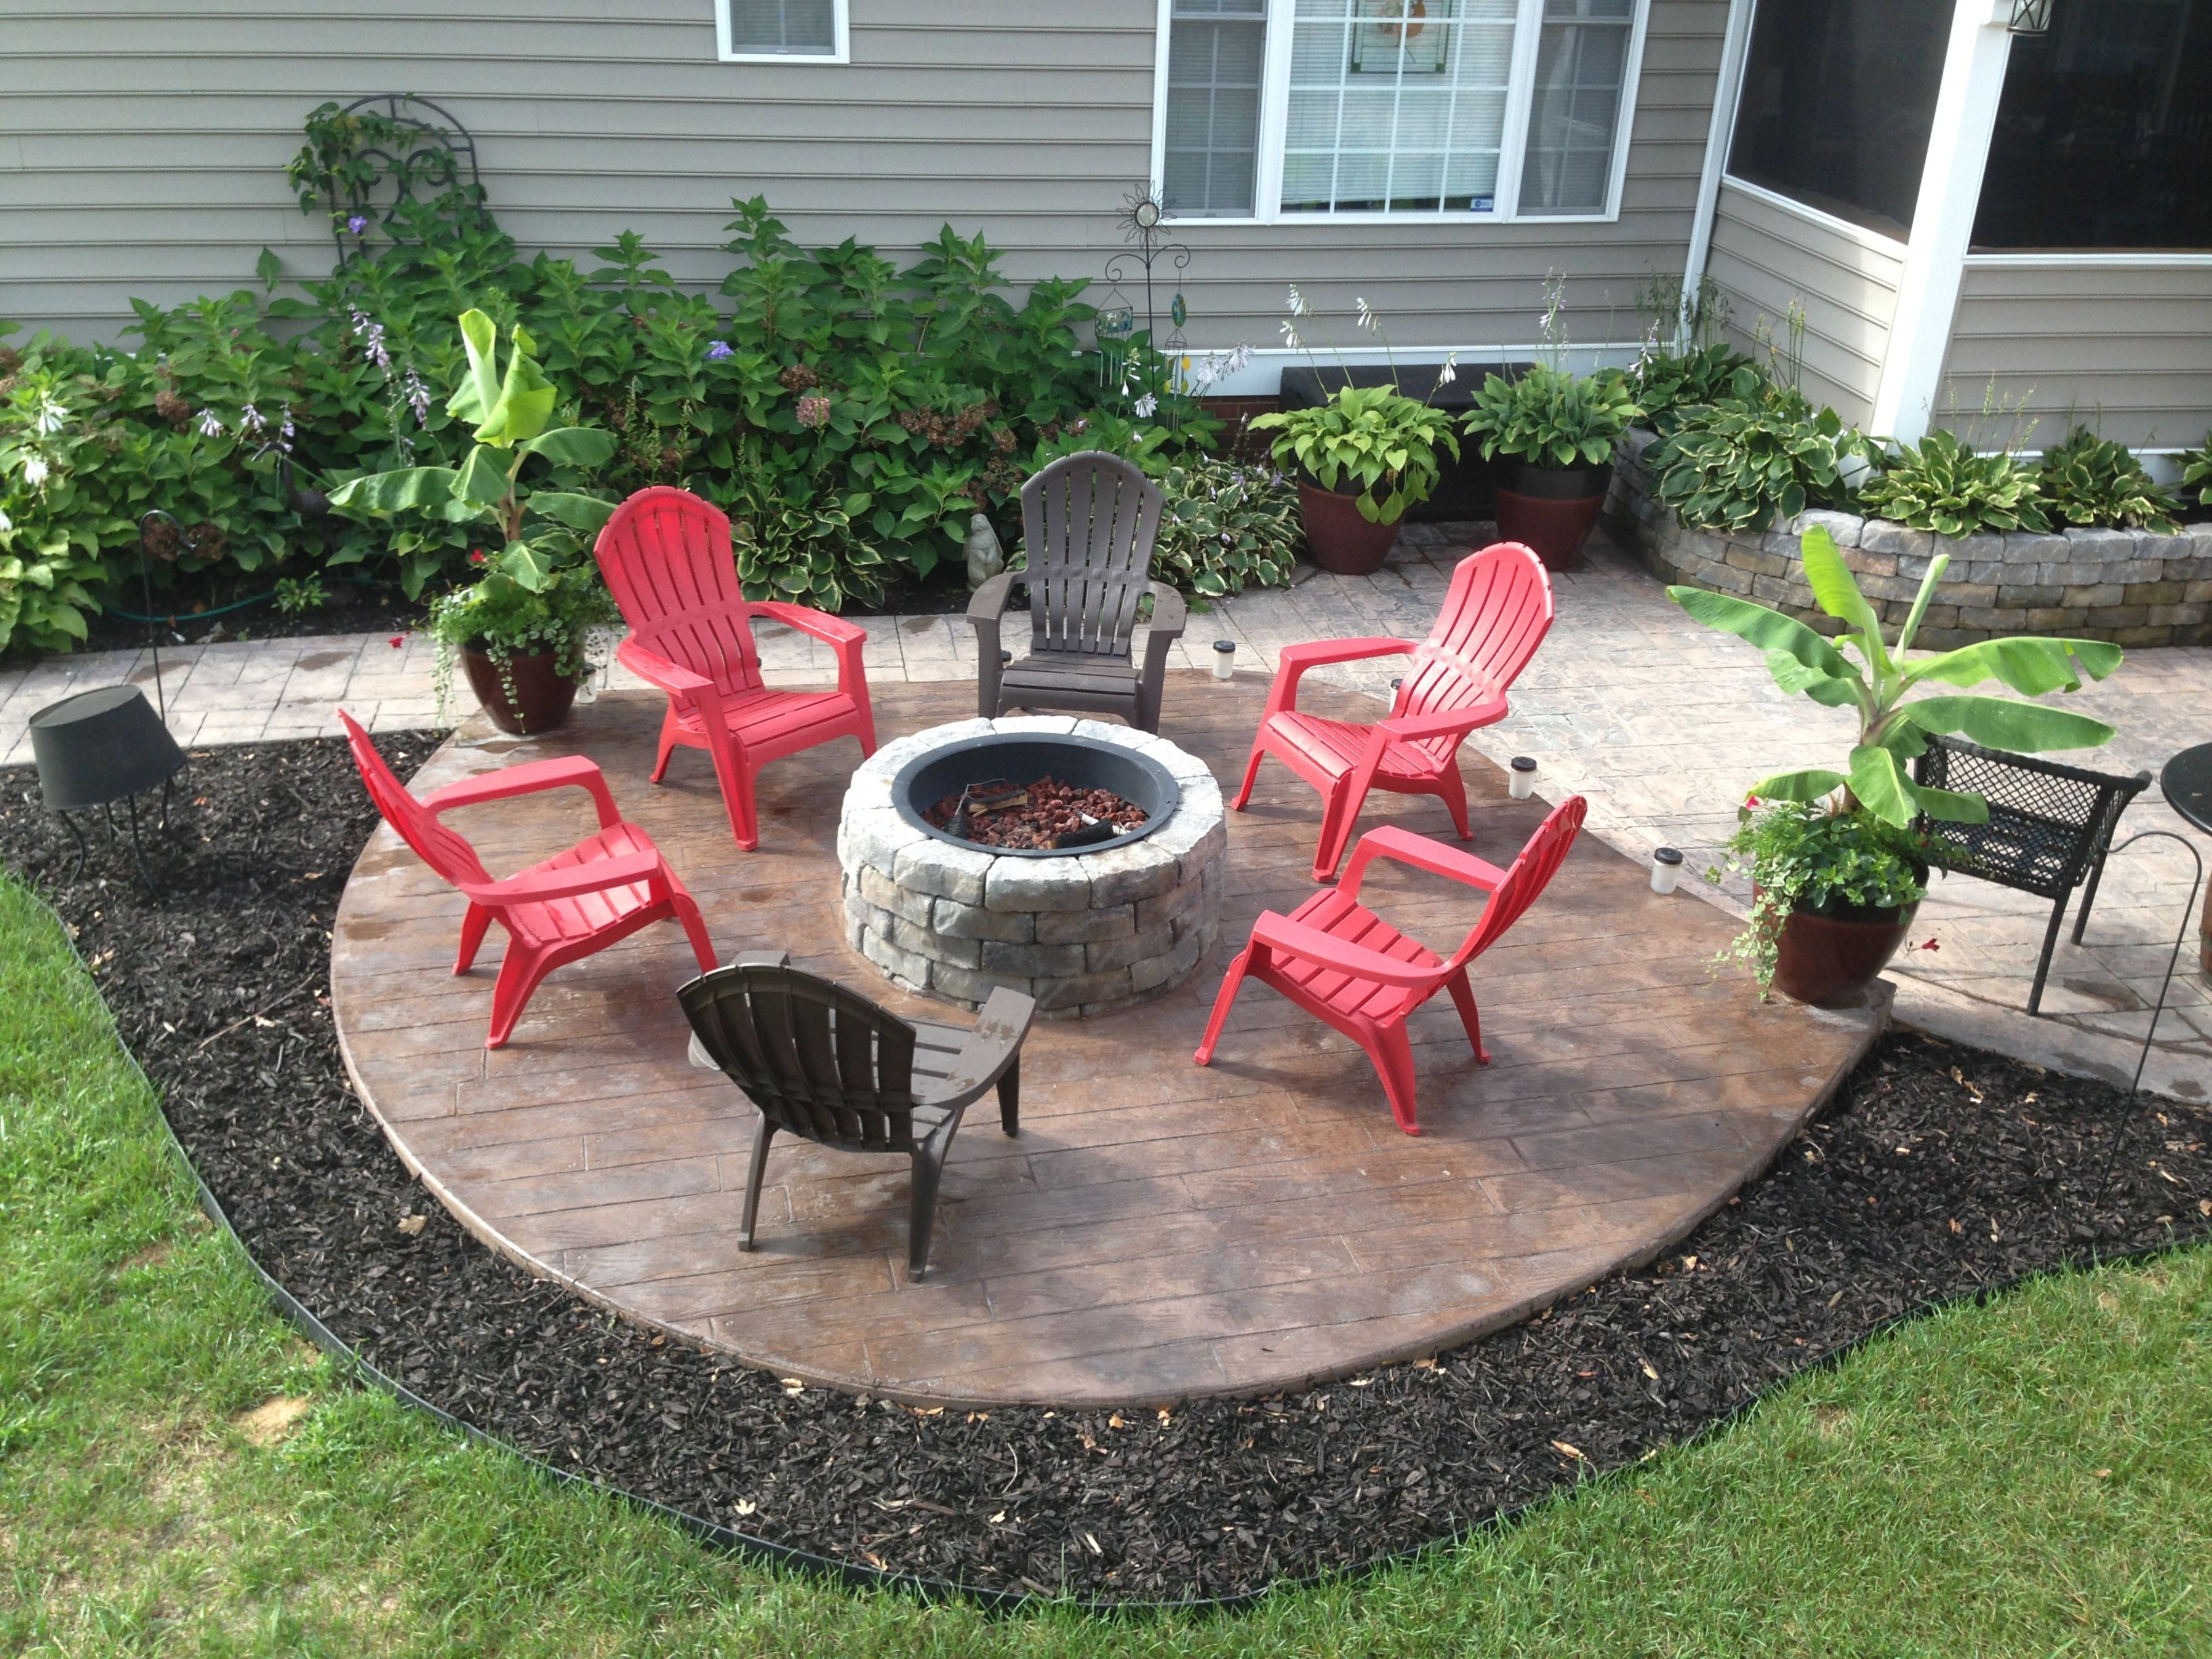 New Stamped Concrete Patio With Built In Fire Pit What A Great Addition To This Already Fantastic Backyard